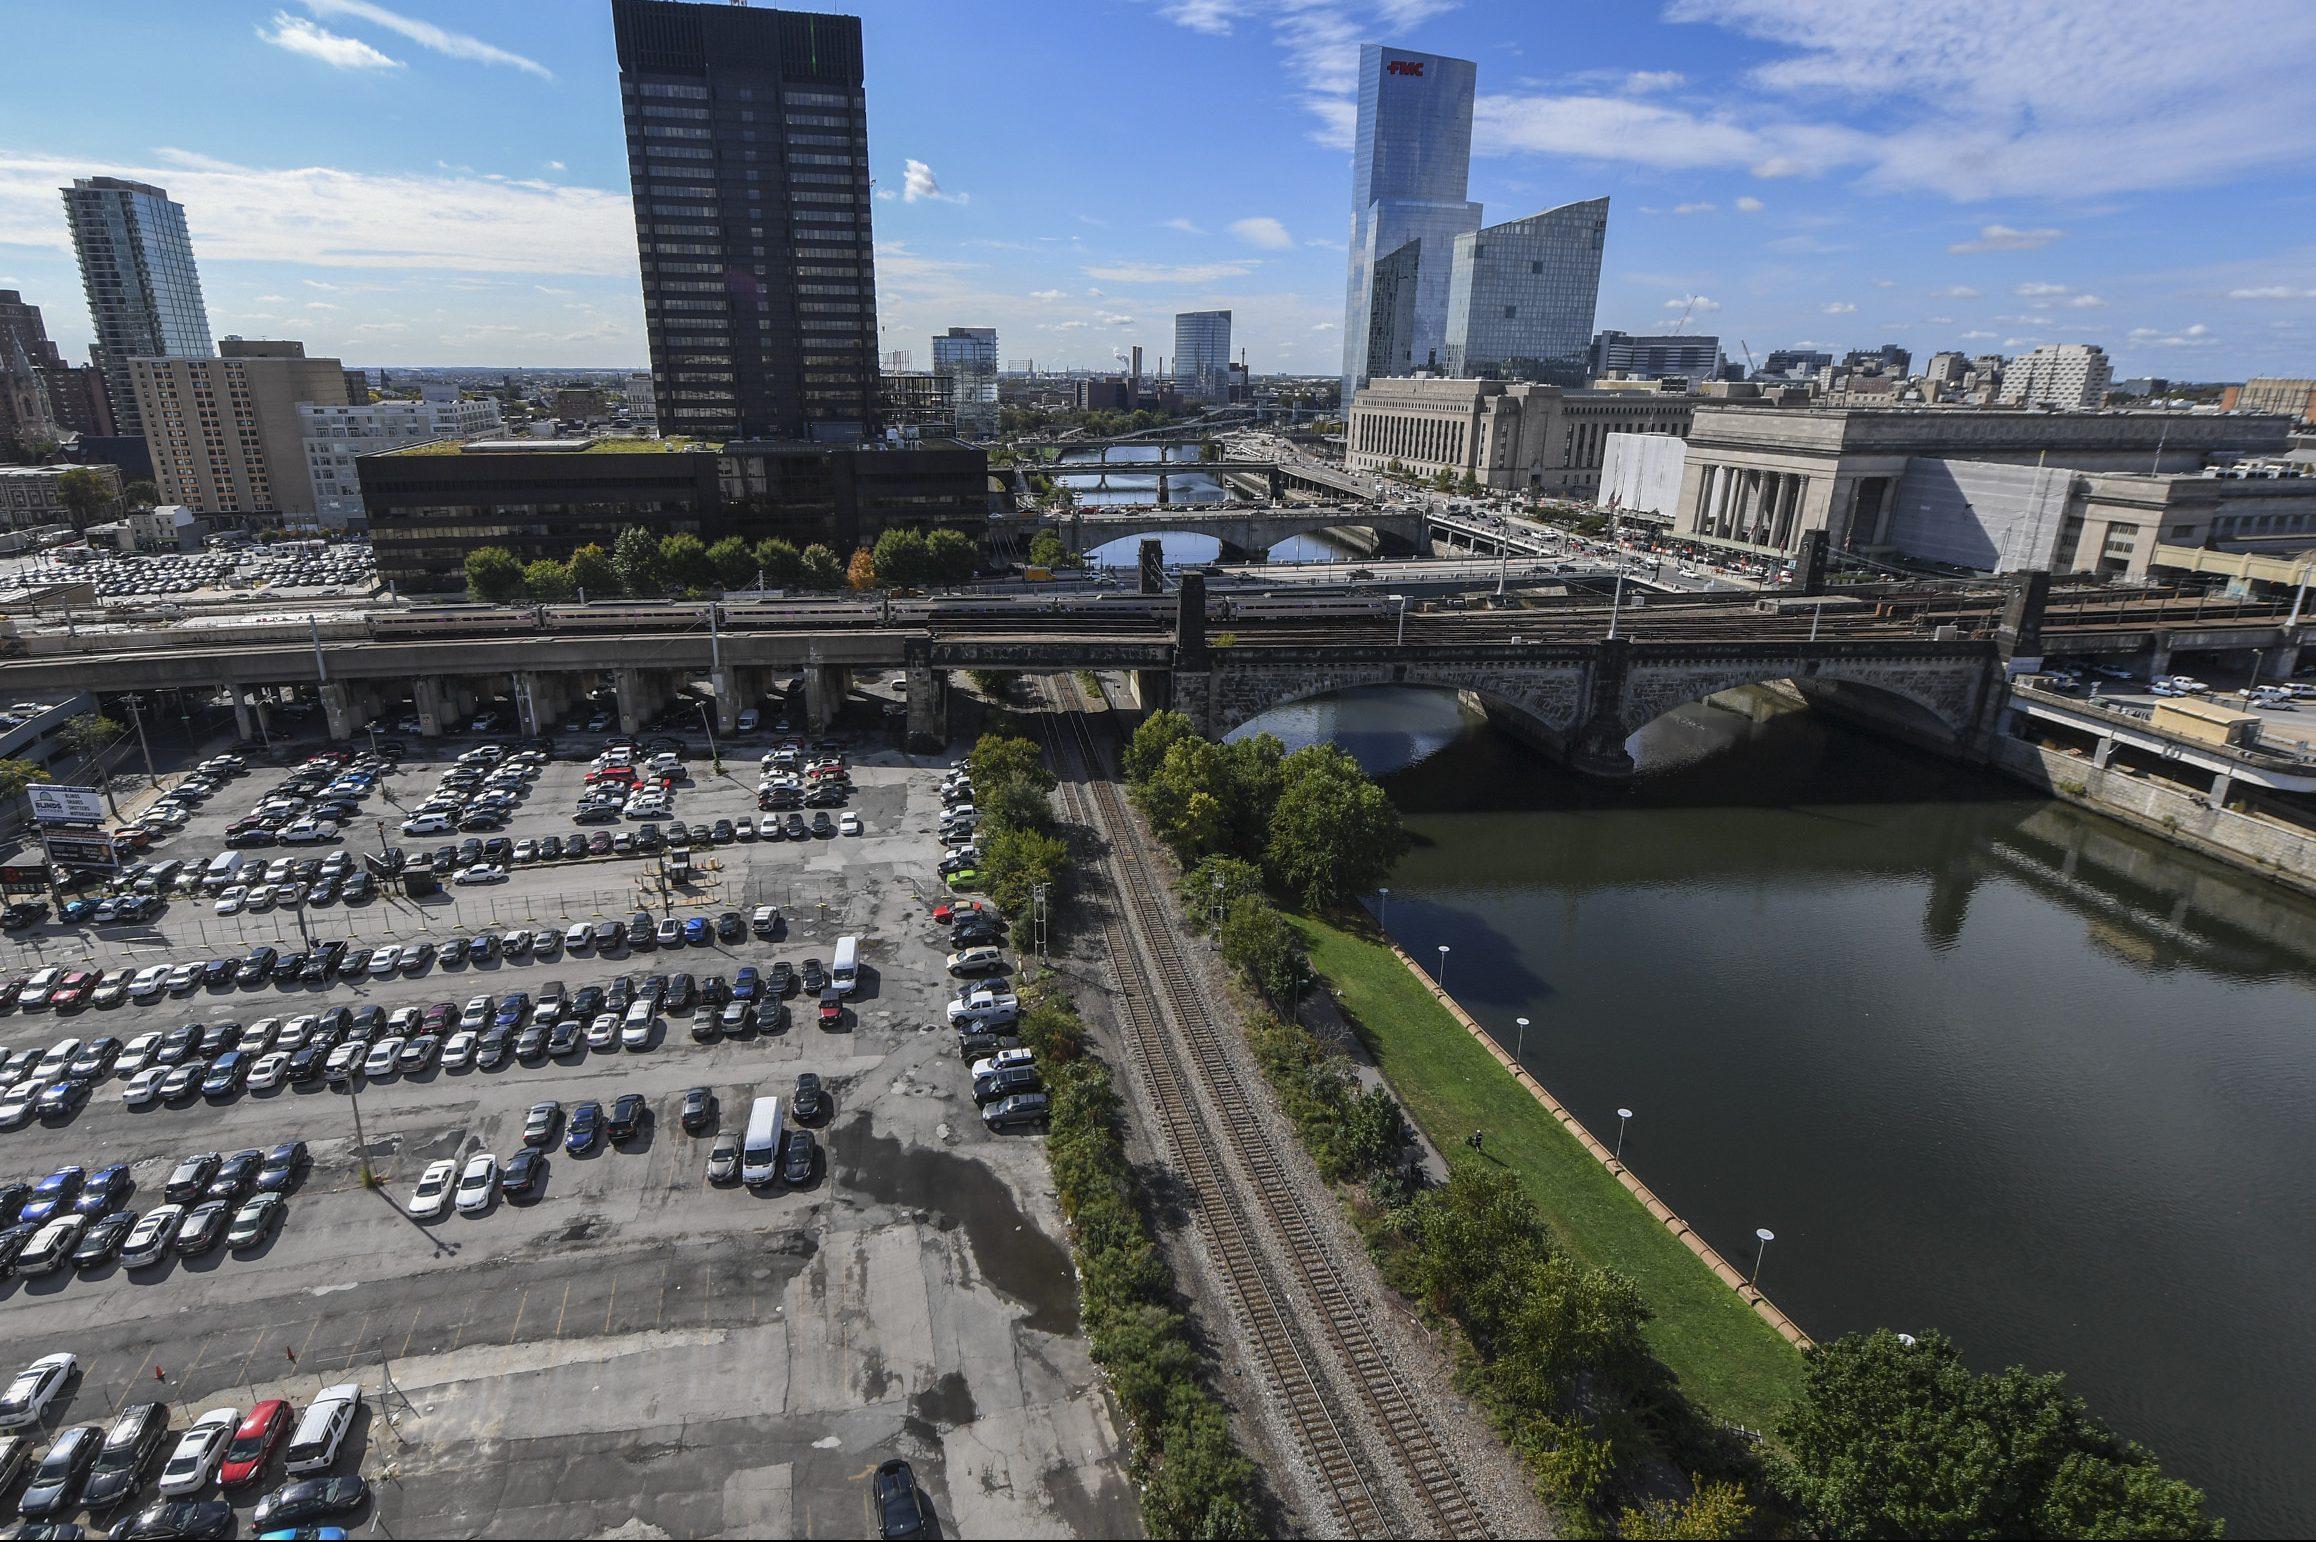 The huge Schuylkill River site being developed as high-rise apartments by PMC would be surrounded by a five-story parking garage. This image was taken from Rivers Edge, looking south to JFK Boulevard.